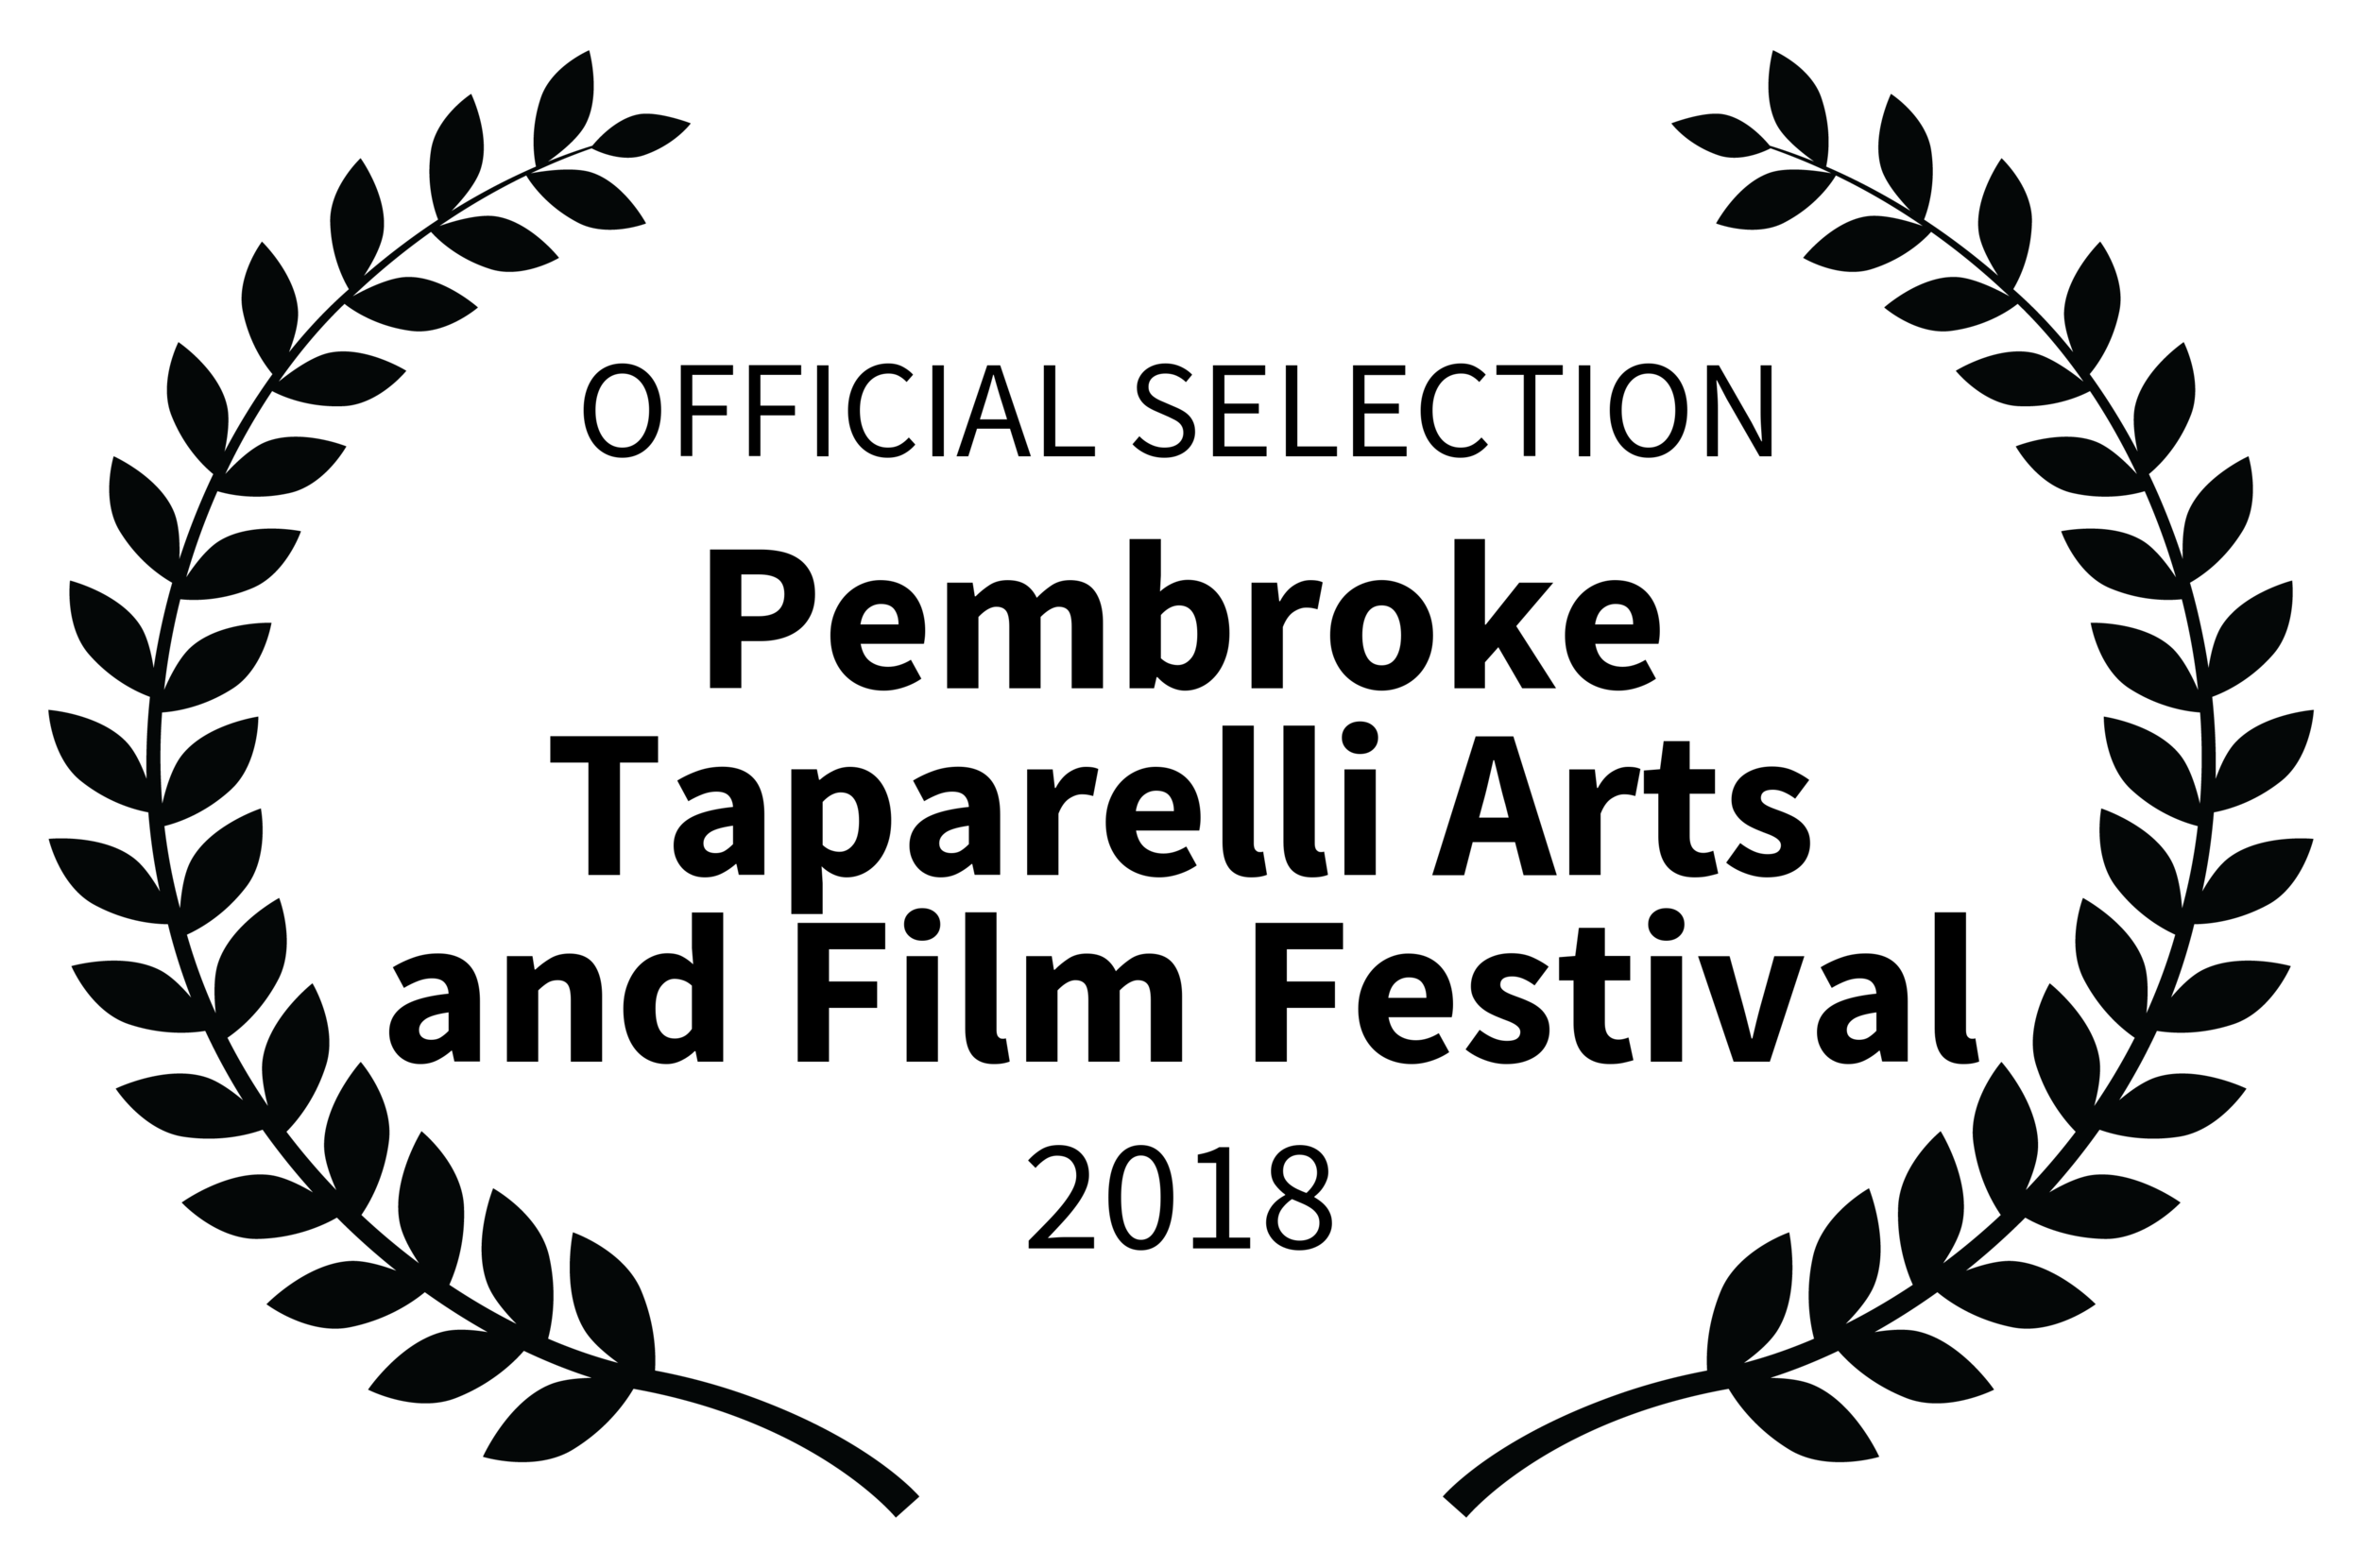 OFFICIALSELECTION-PembrokeTaparelliArtsandFilmFestival-2018.png